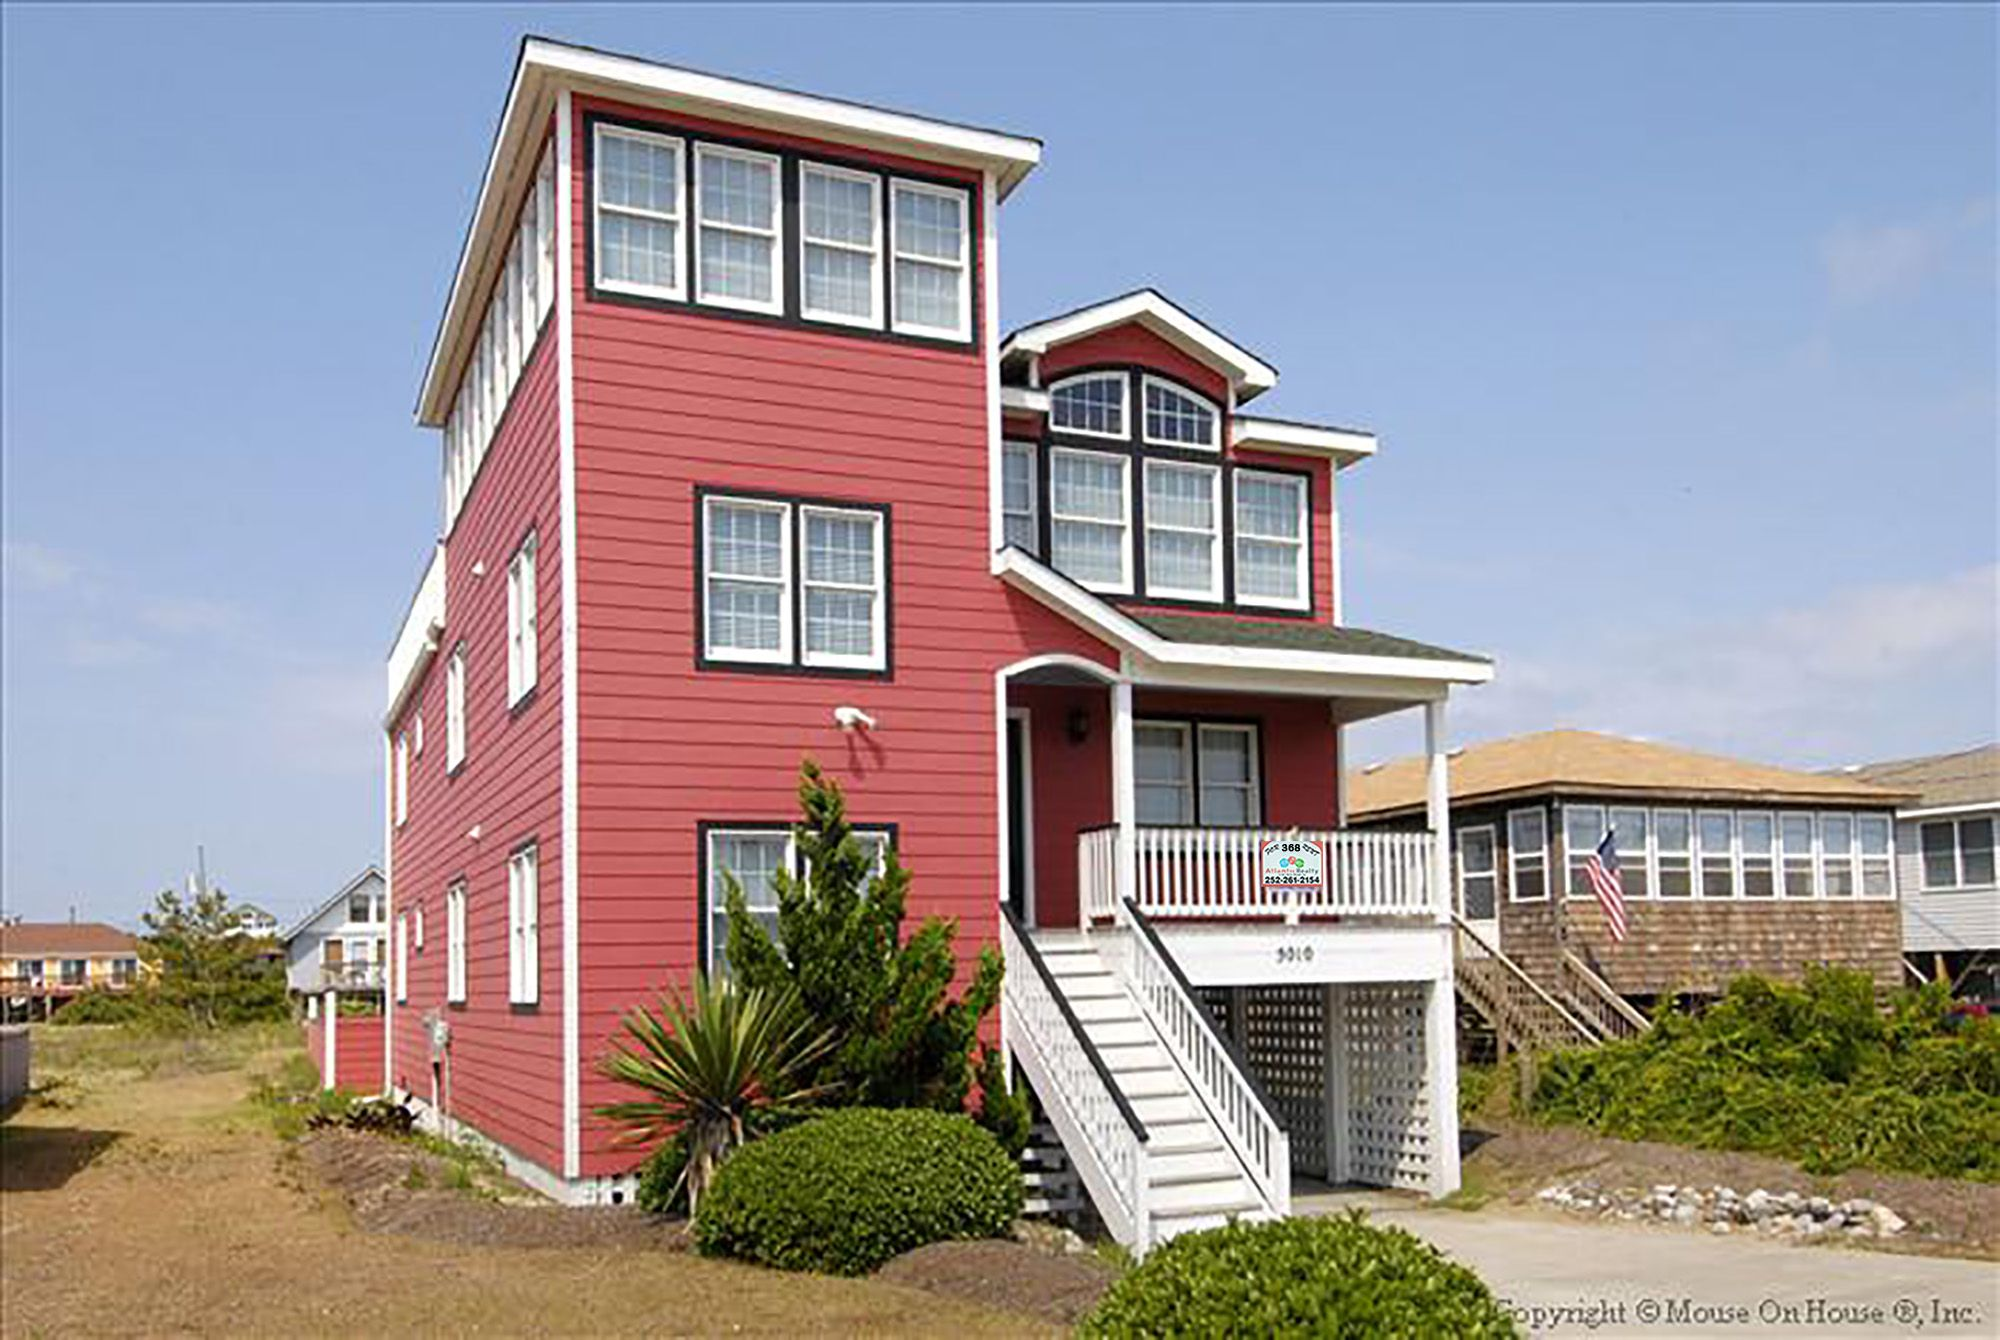 368 The Painted Lady Atlantic Realty Nc Kitty Hawk Semi Of Beach Rd 5 Bedrooms Turn Day Su Outer Banks Vacation Rentals Outer Banks Vacation Beach Bedroom